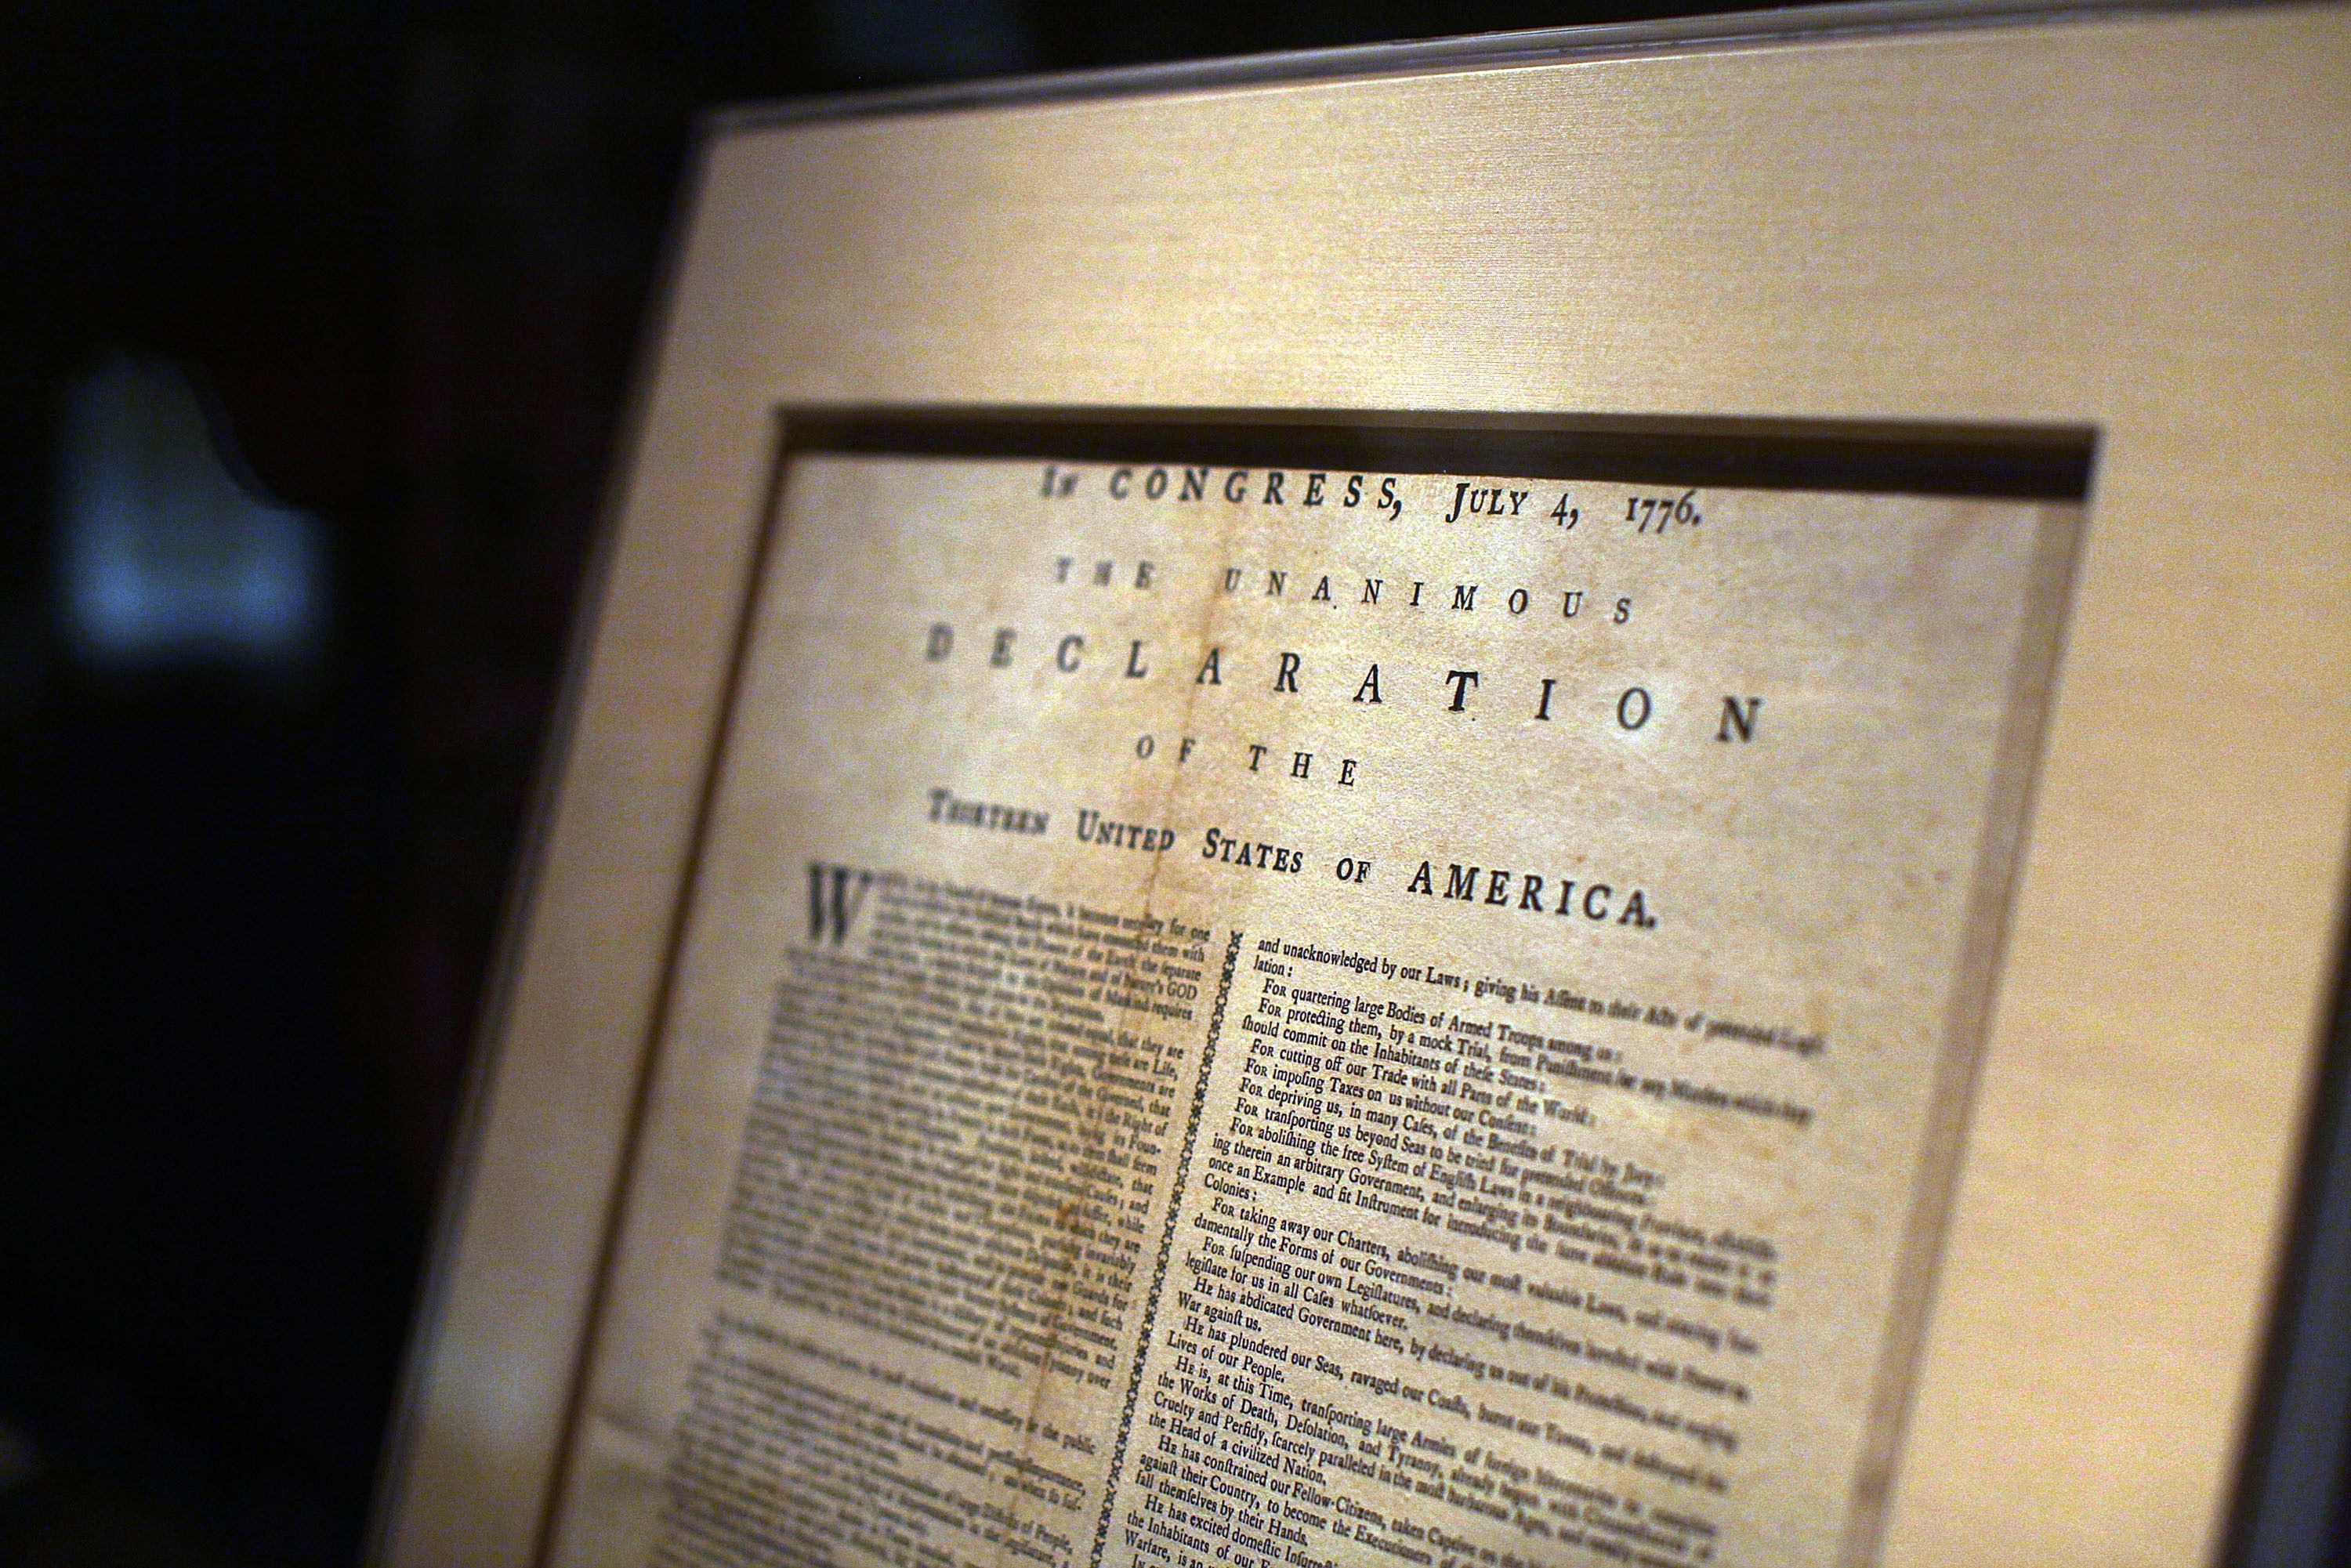 A page from the Declaration of Independence is displayed at the New York Public Library on July 3, 2009 in New York City.